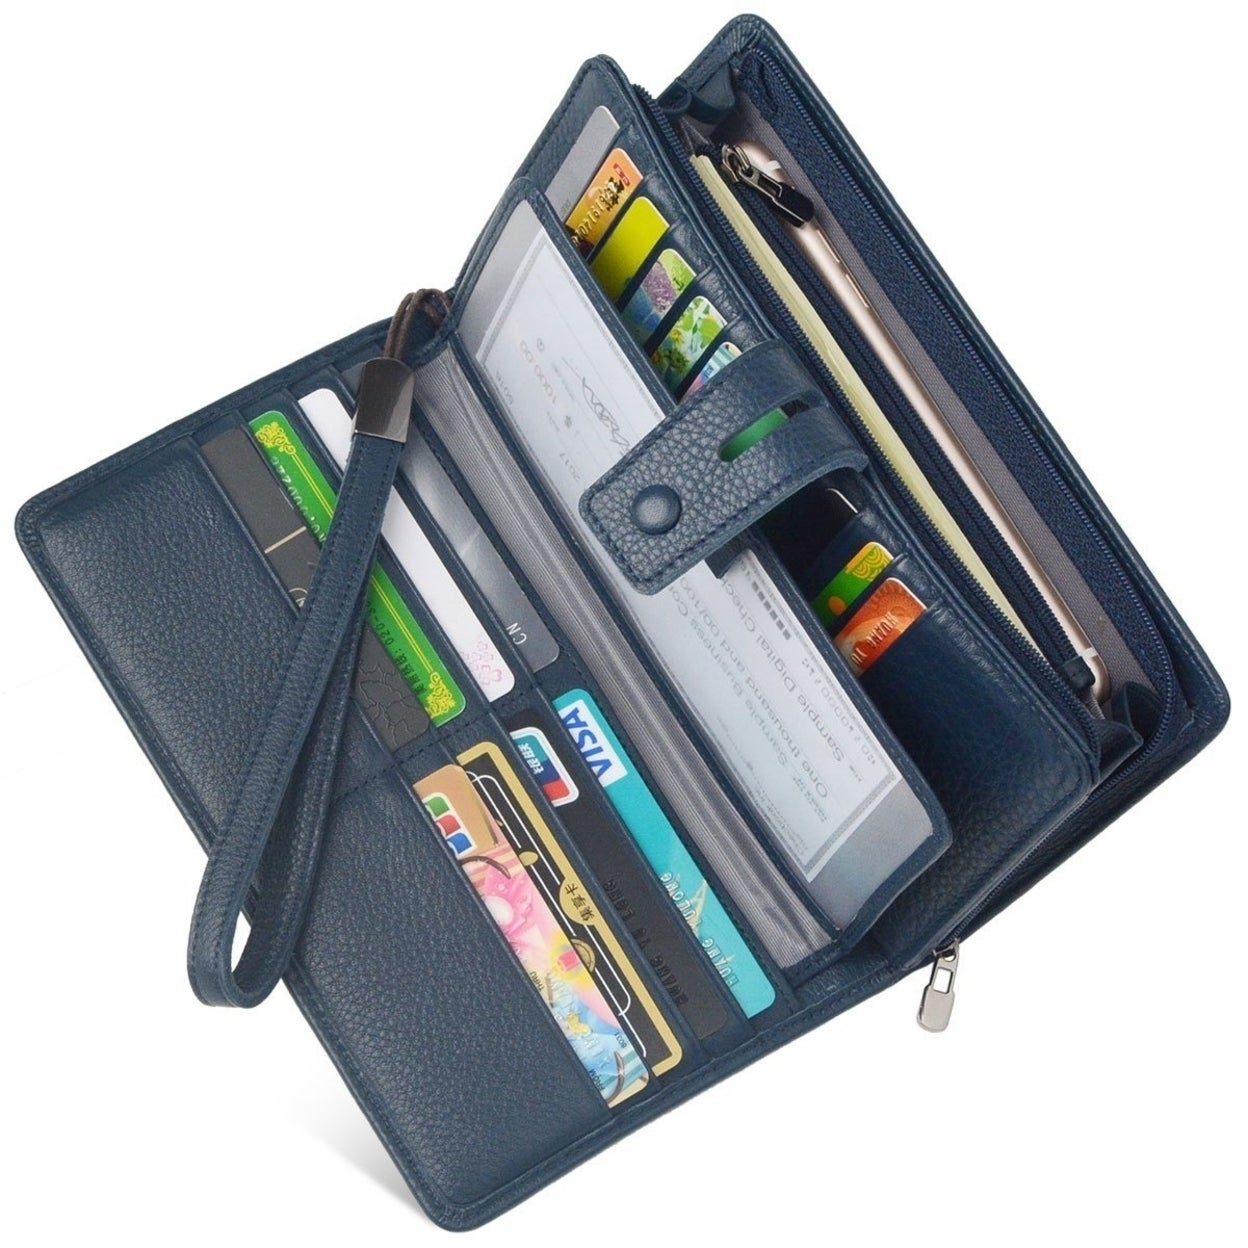 1aa492ef44 Shop Women's RFID Leather Clutch Wallet Checkbook Holder - Free Shipping  Today - Overstock - 23119496